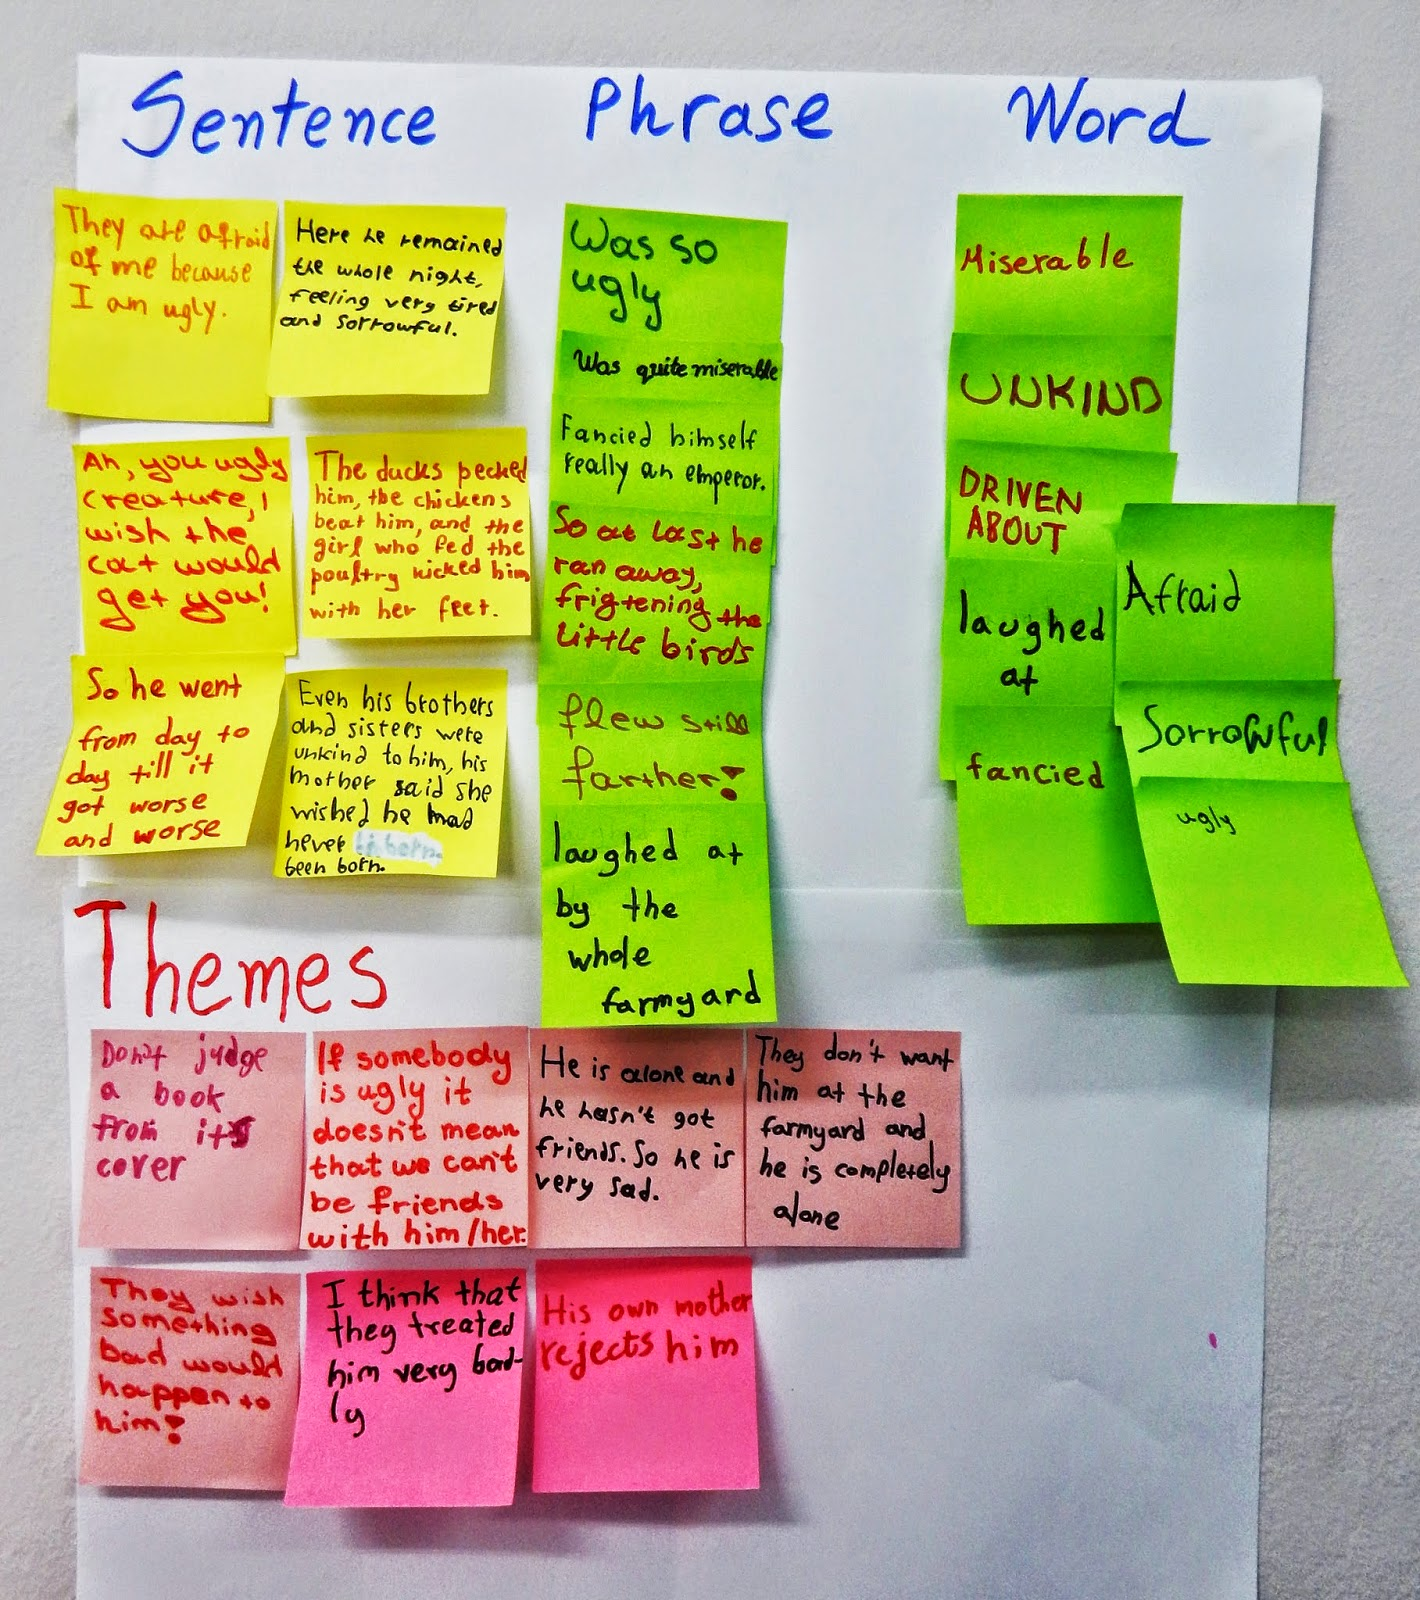 Sentence Phrase Word Capturing The Essence Of A Text